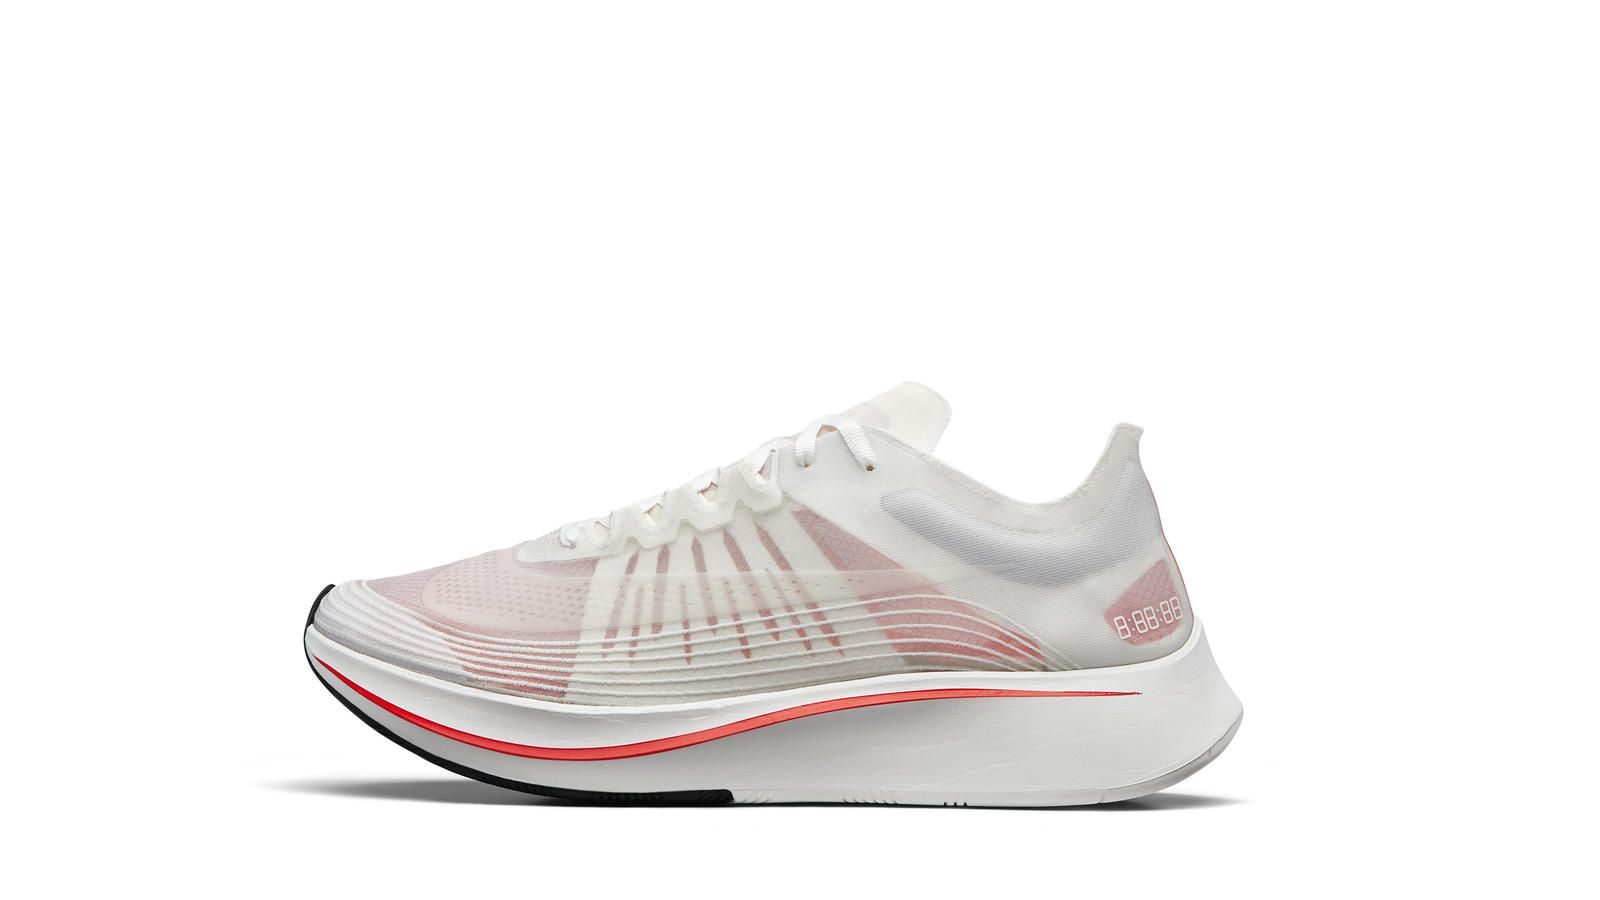 Up Next: The Breaking2 Collection- Nikelab Zoom Fly SP